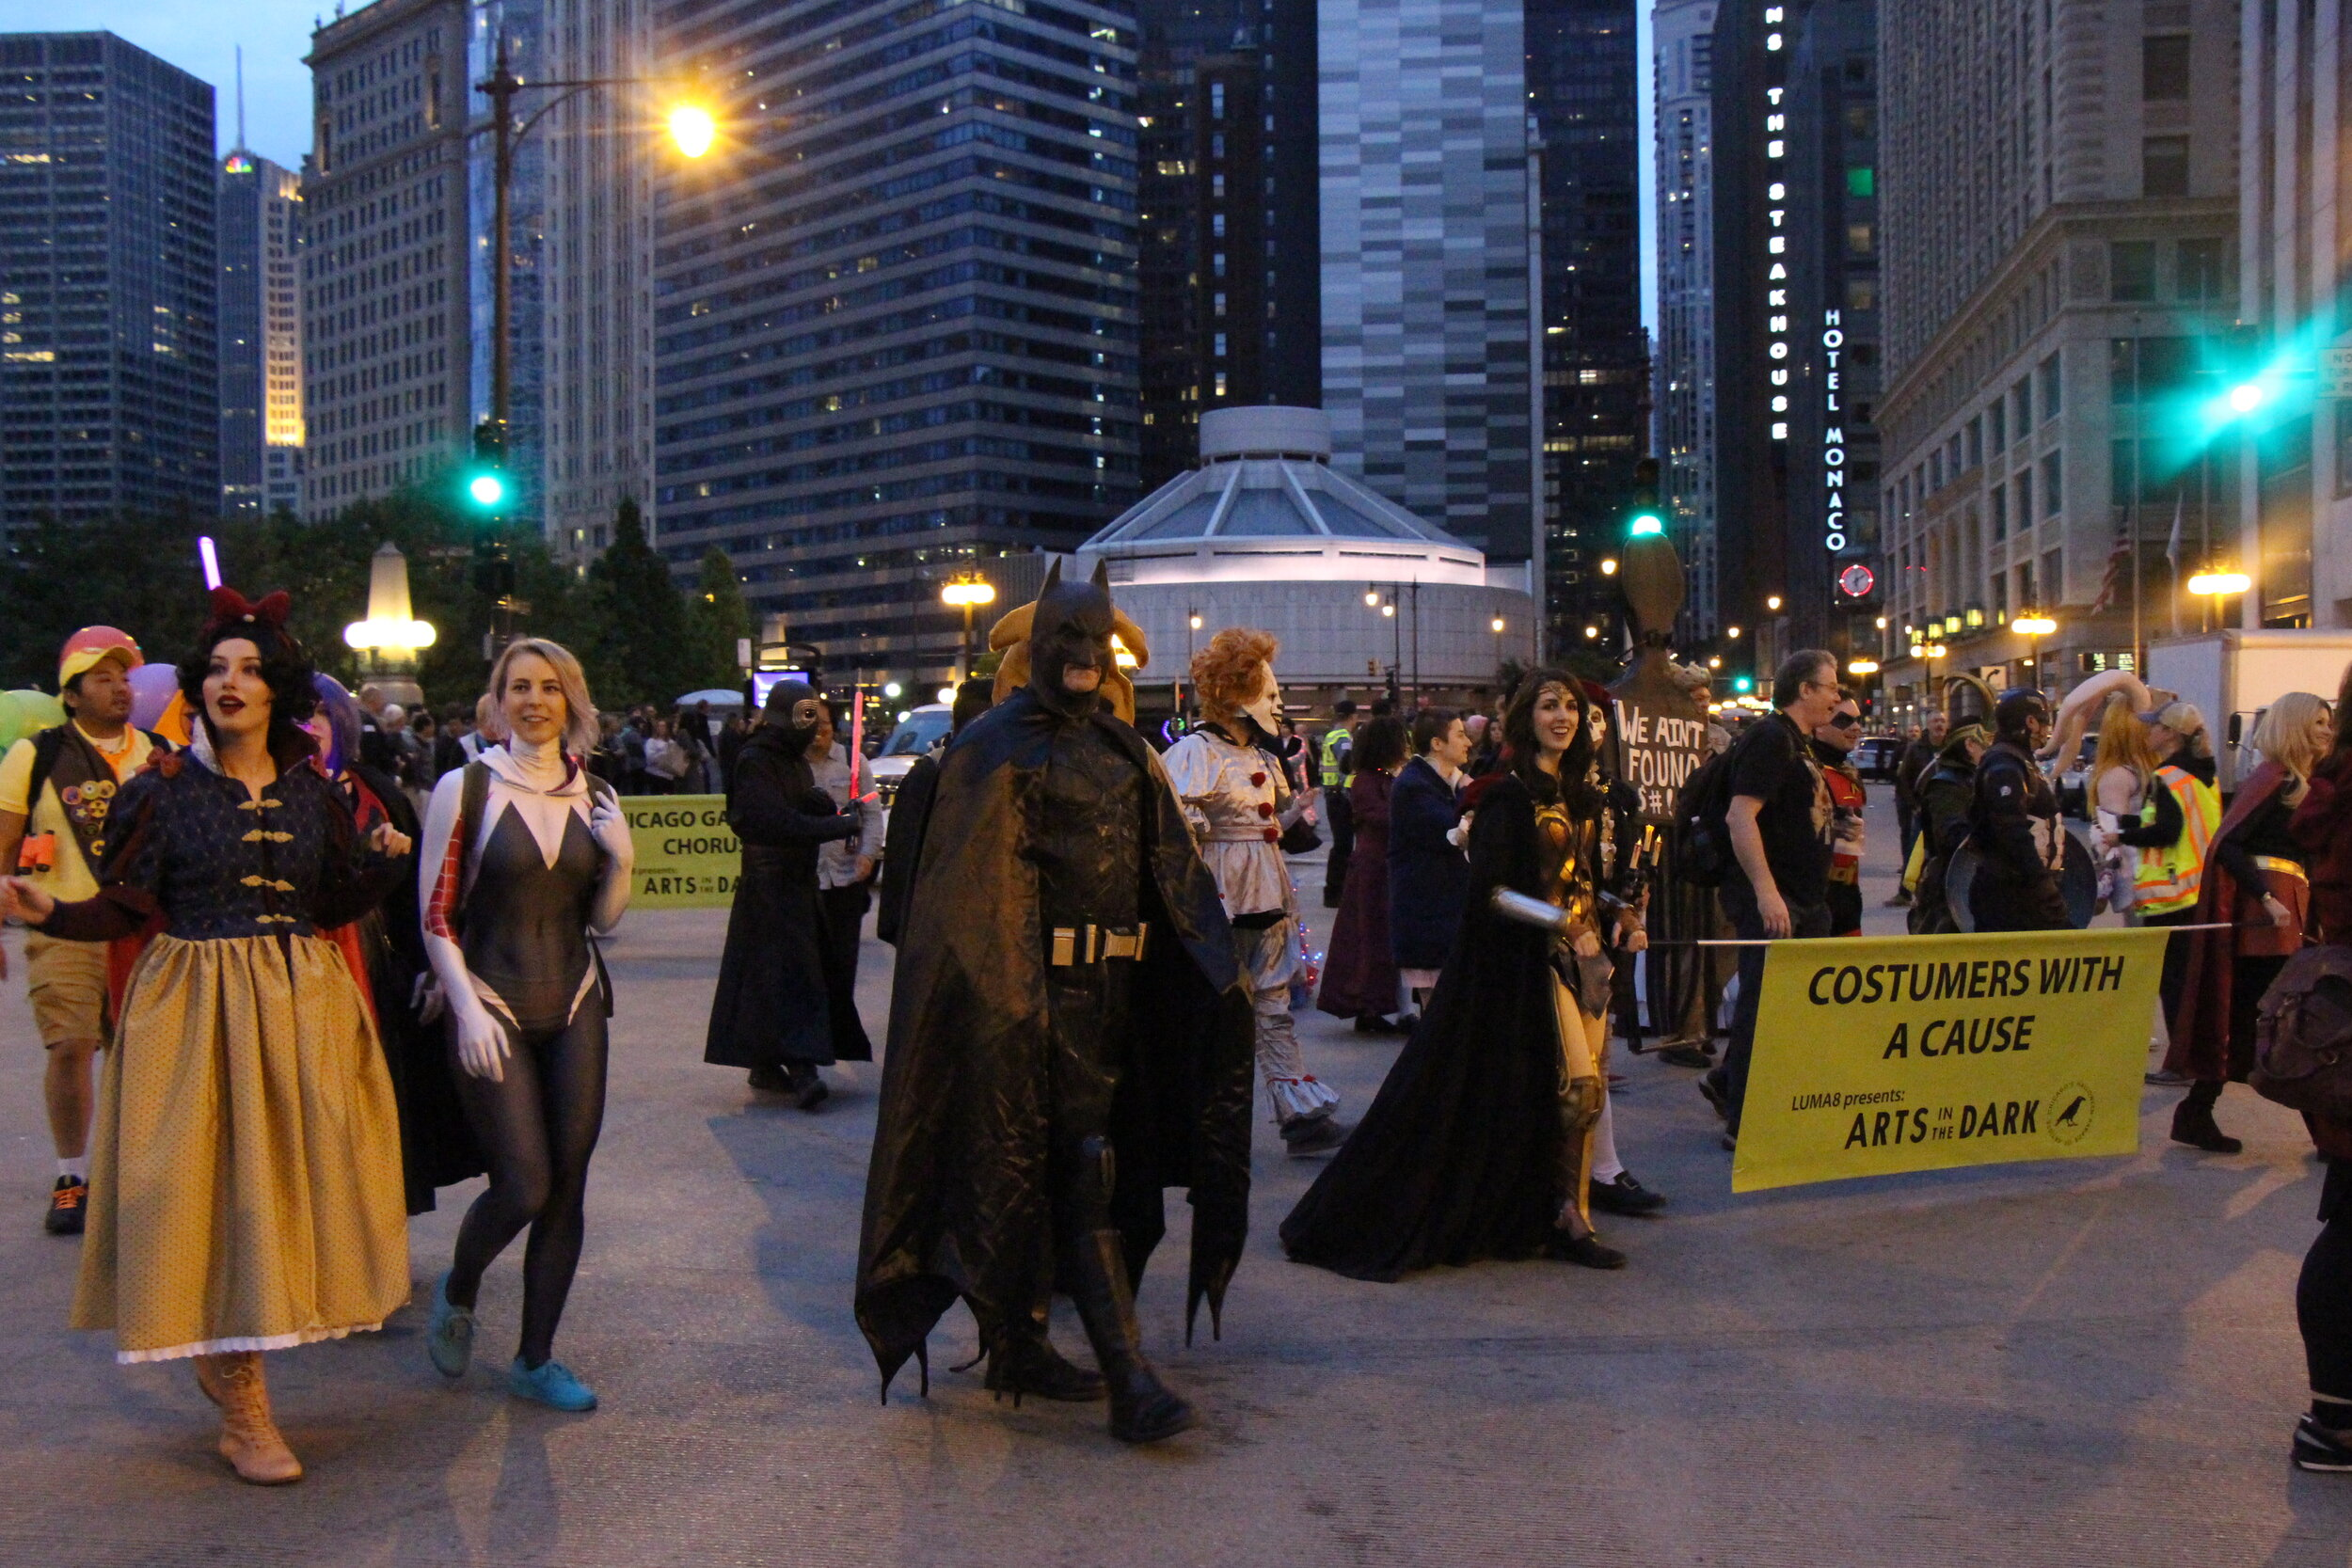 'Costumers with a cause' marching with there banner